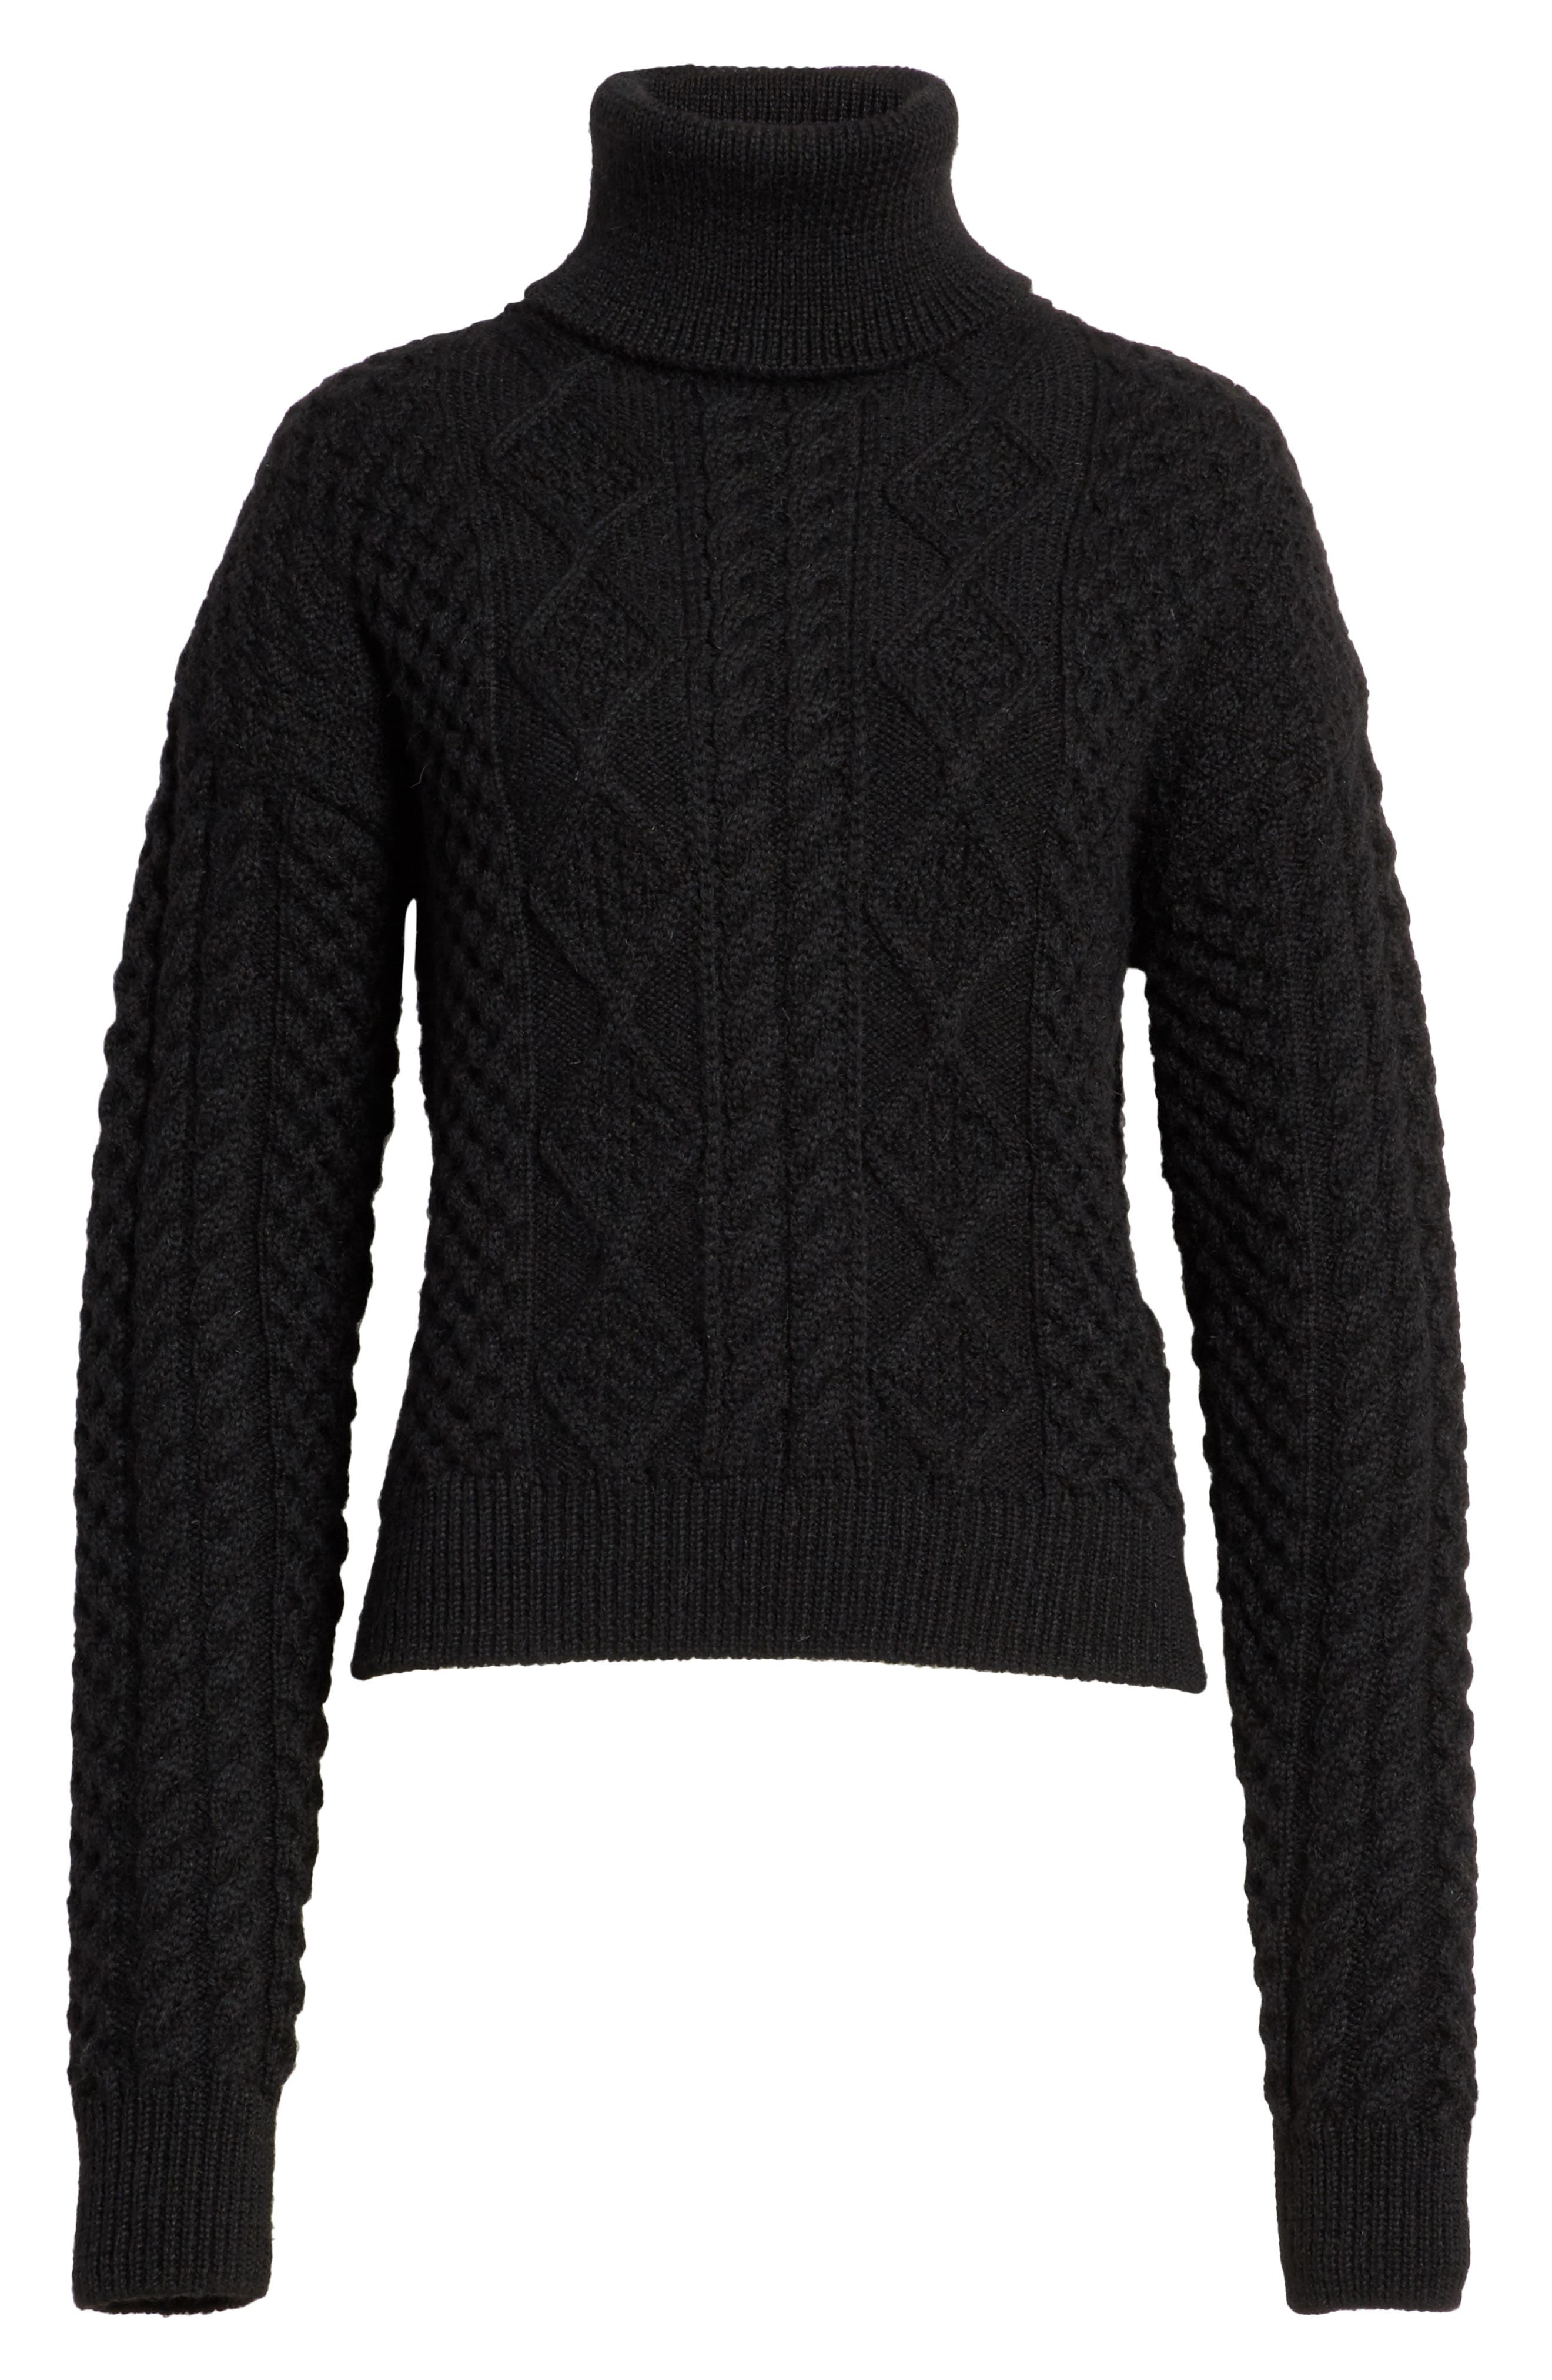 Cable Knit Wool Turtleneck Sweater,                             Alternate thumbnail 6, color,                             001